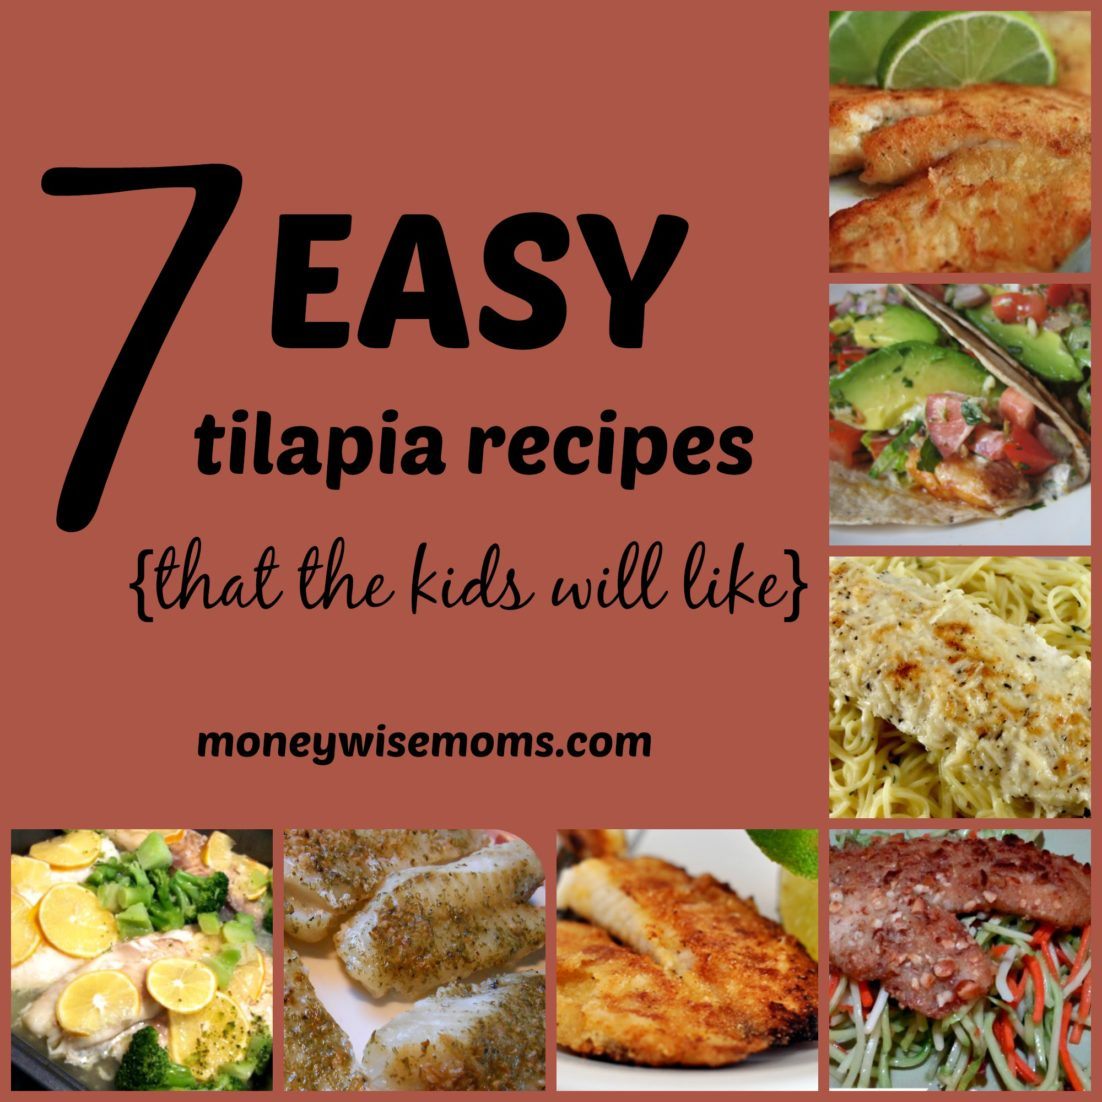 Easy Tilapia recipes that the kids will like - family friendly fish recipes